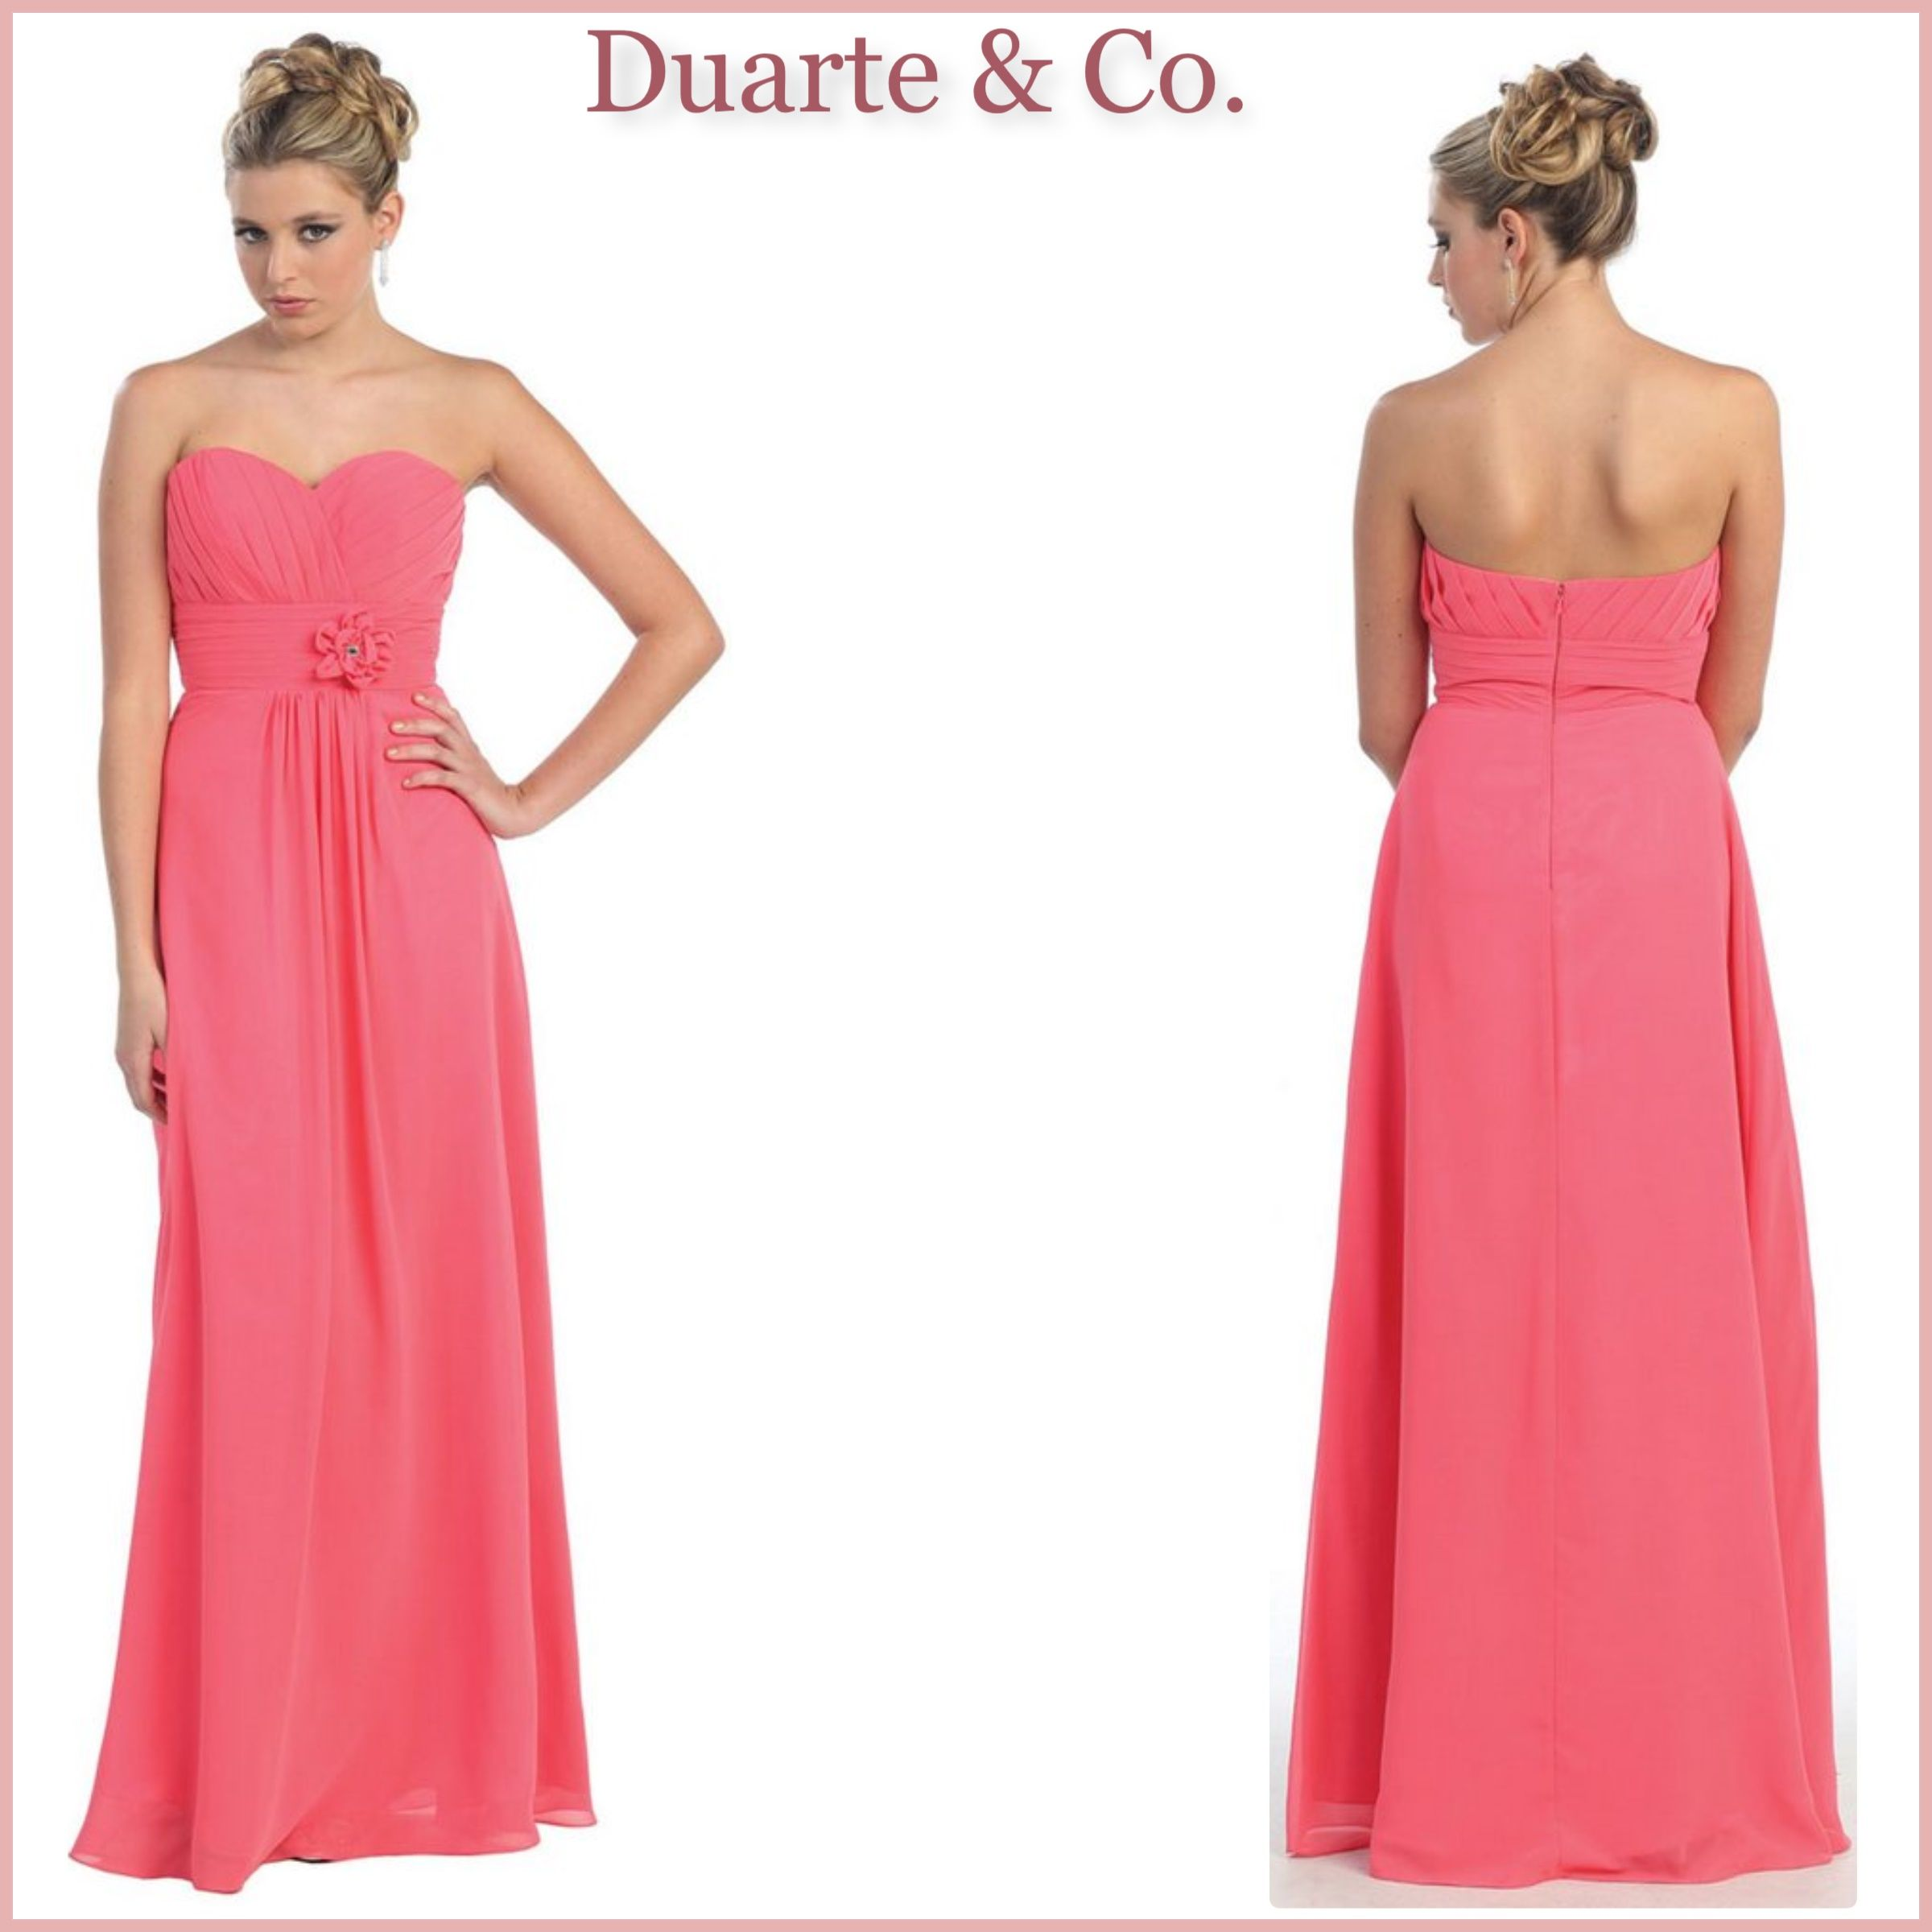 9db7fc5bb0 MQ875  88.00 Chiffon Strapless Bridesmaid Dress W Plus Sizes Comes in 15  colors and can be used for any special occasion. Available in plus sizes 4  to size ...